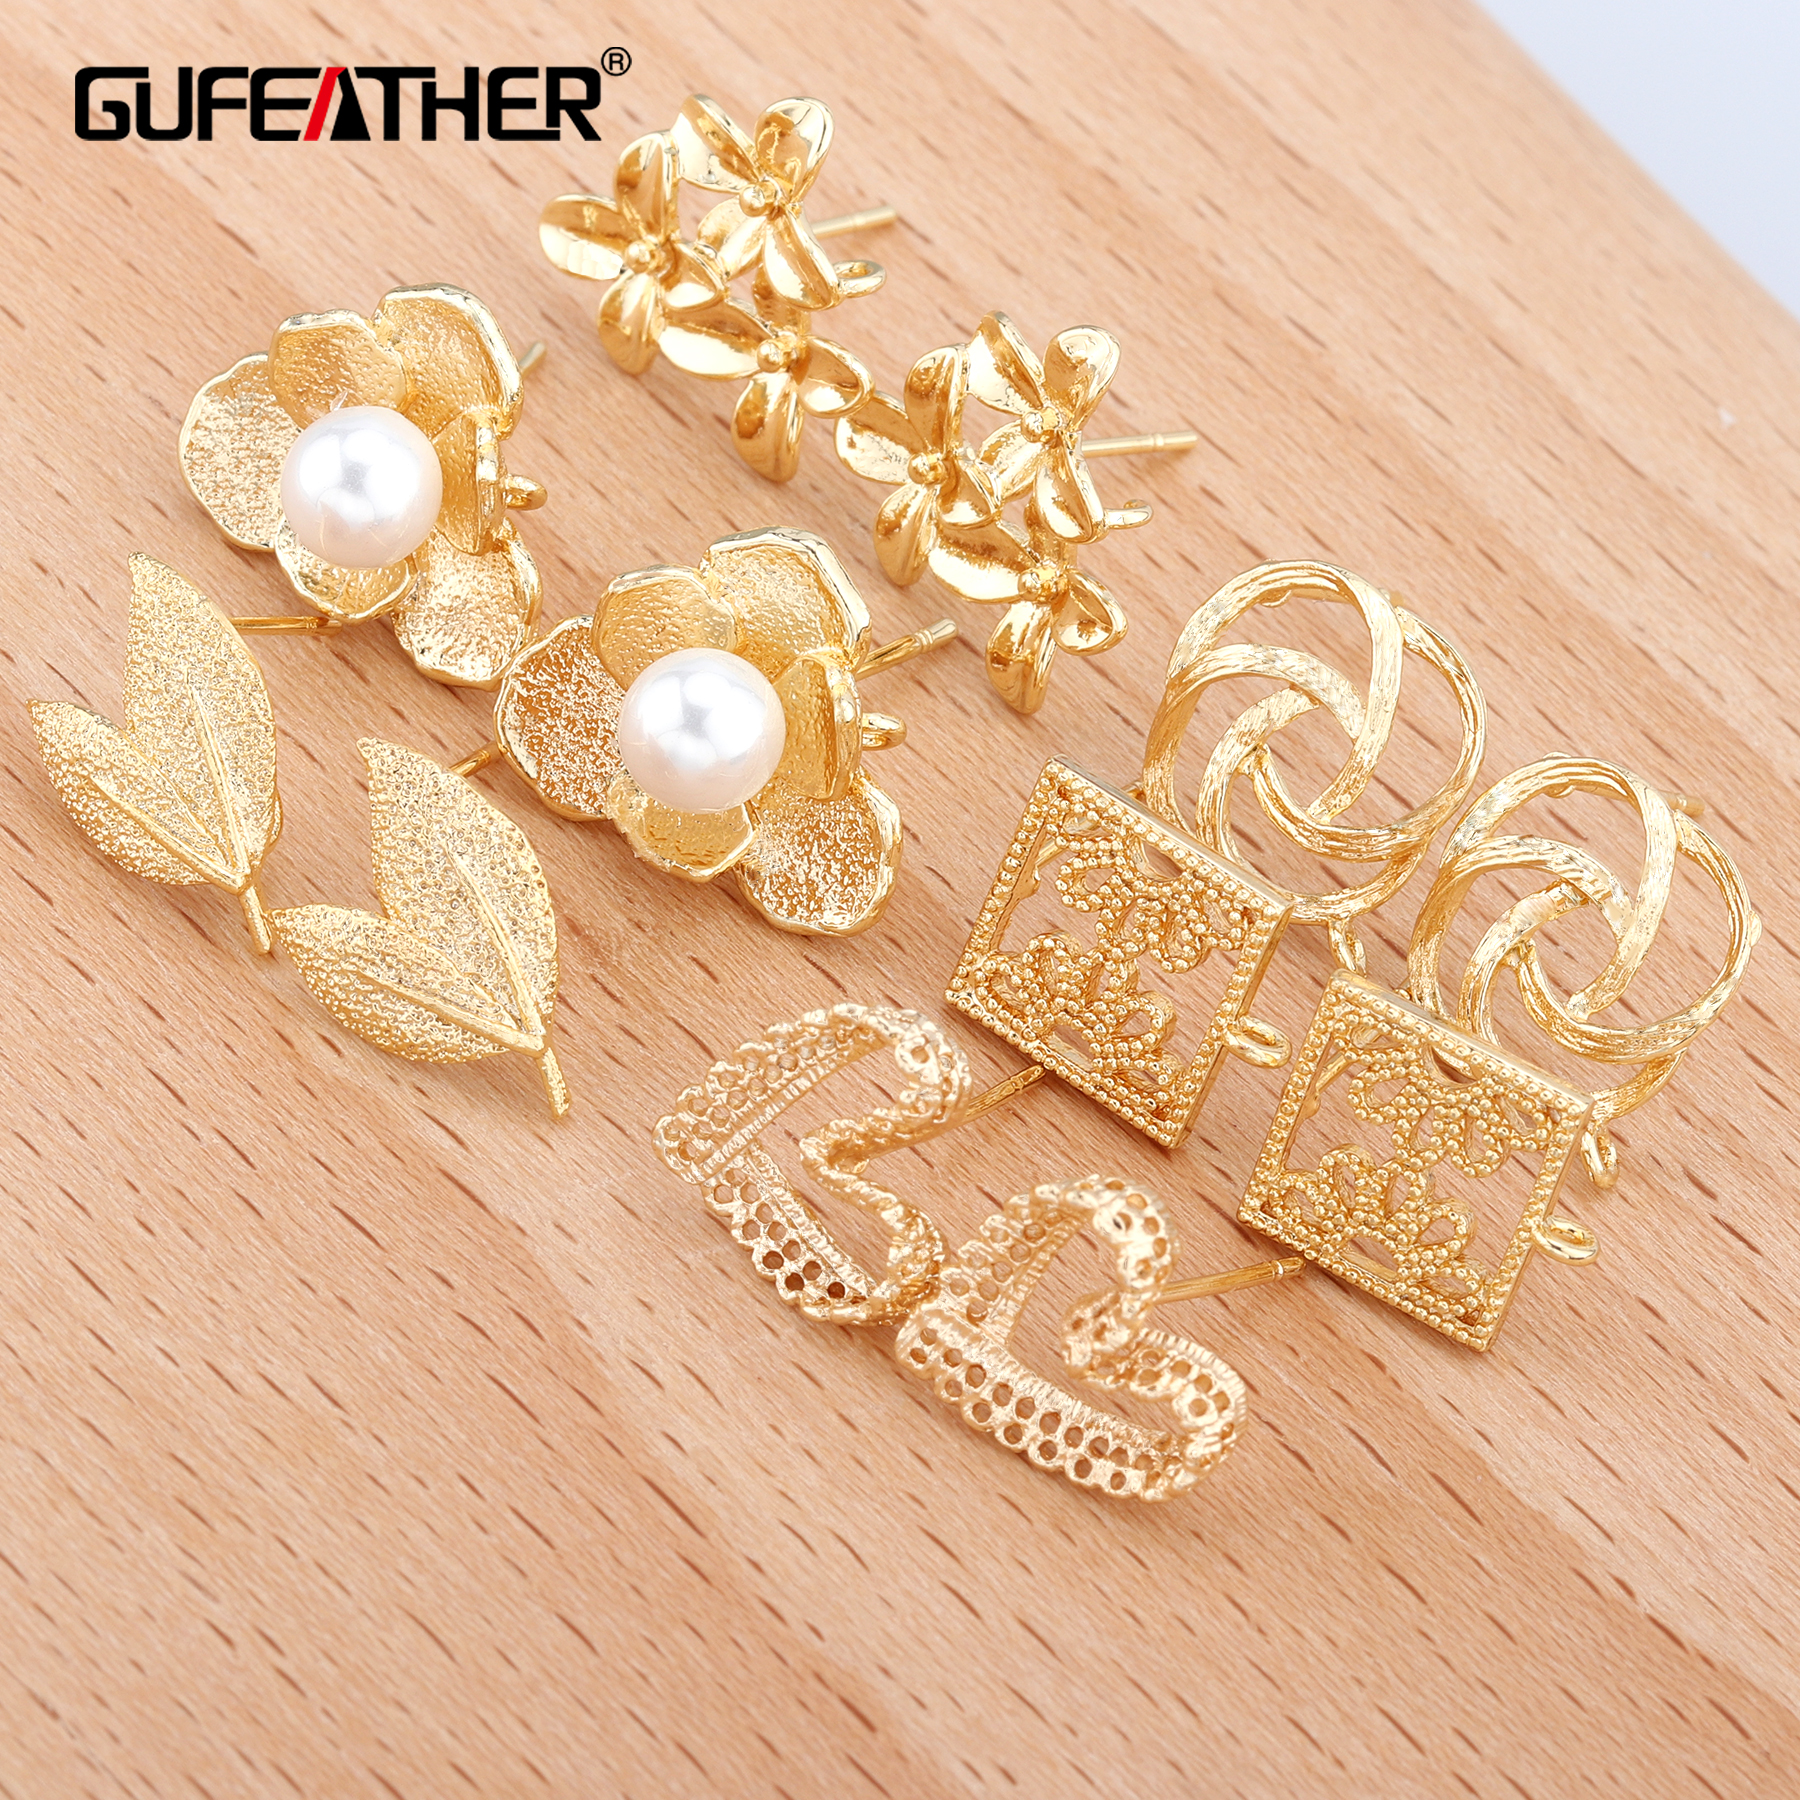 GUFEATHER M322,jewelry Accessories,jewelry Findings,accessory Parts,18k Gold,diy Earrings,hand Made,stud Earrings,jewelry Making